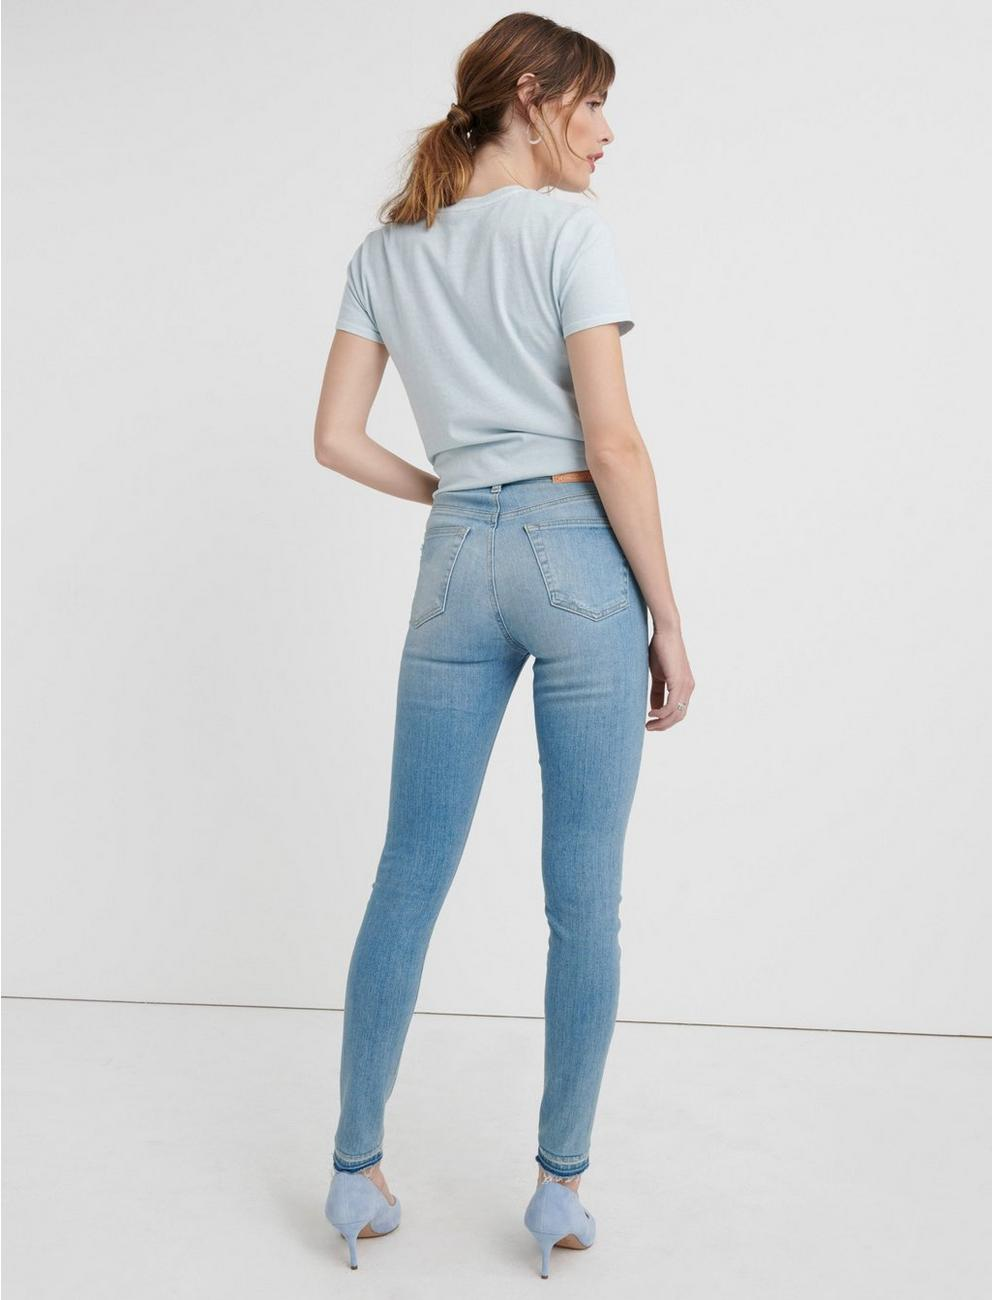 HIGH RISE BRIDGETTE SKINNY JEAN, GALLATIN